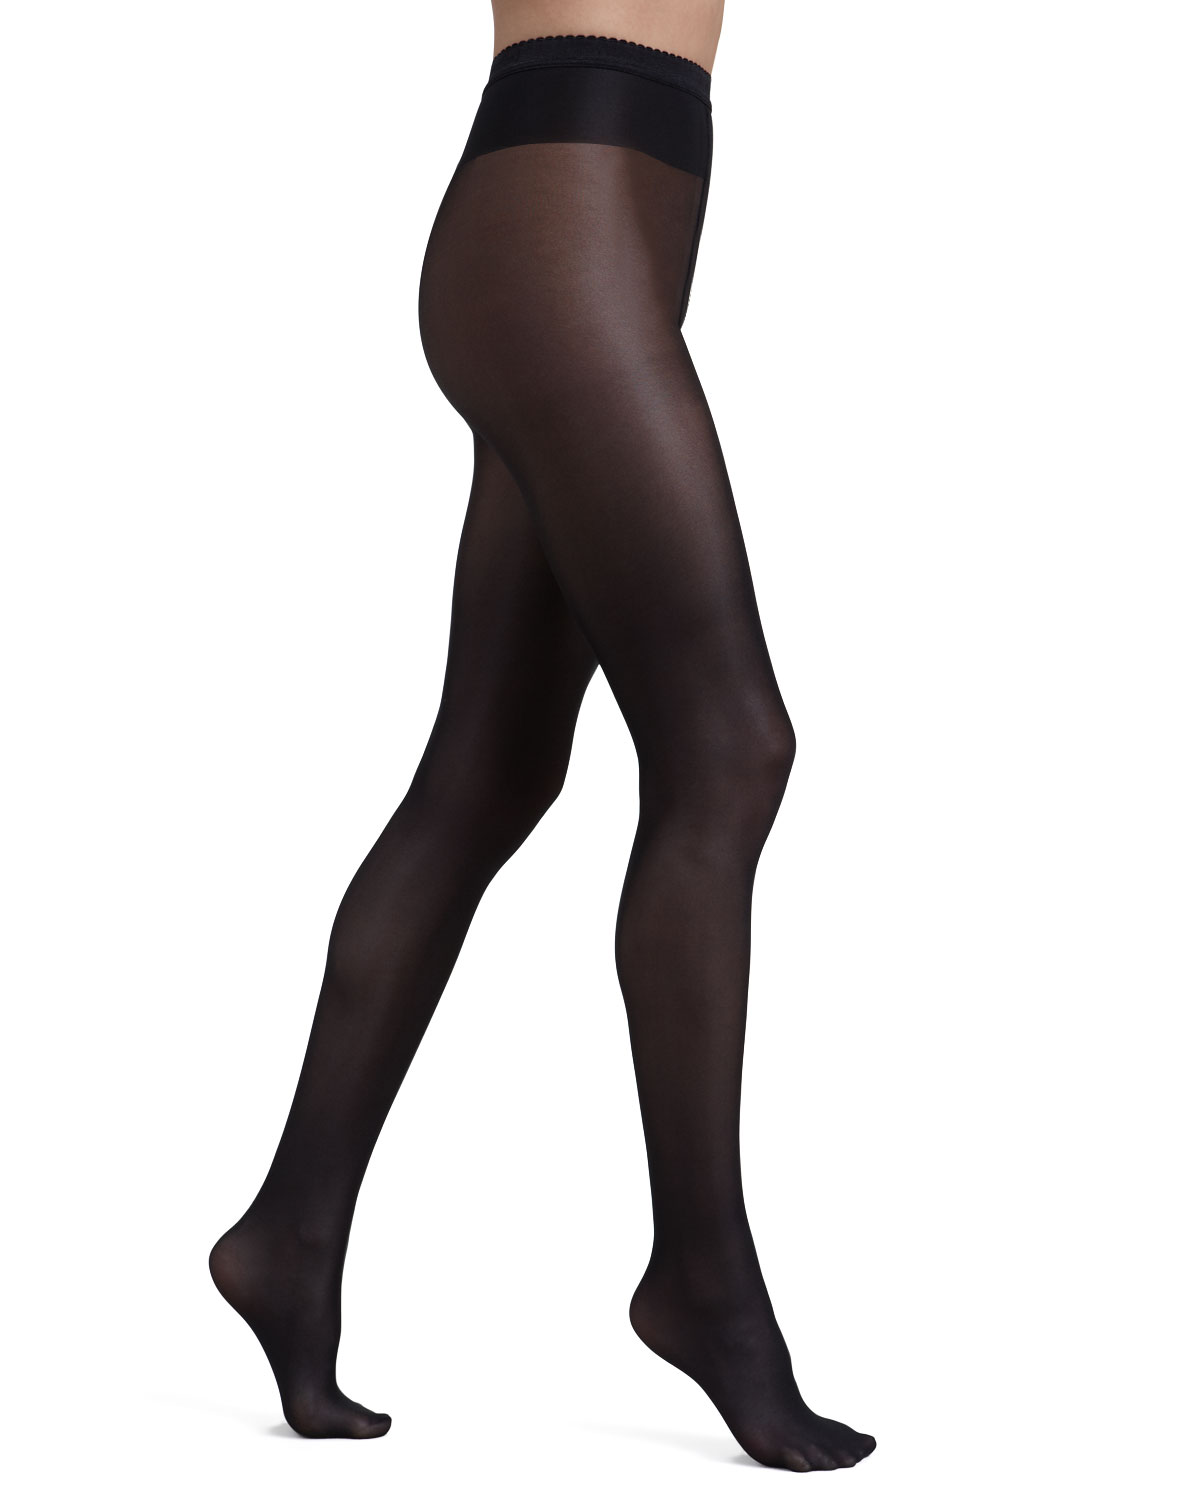 Neon 40 Glossy Tights, Size: LARGE, BLACK - Wolford